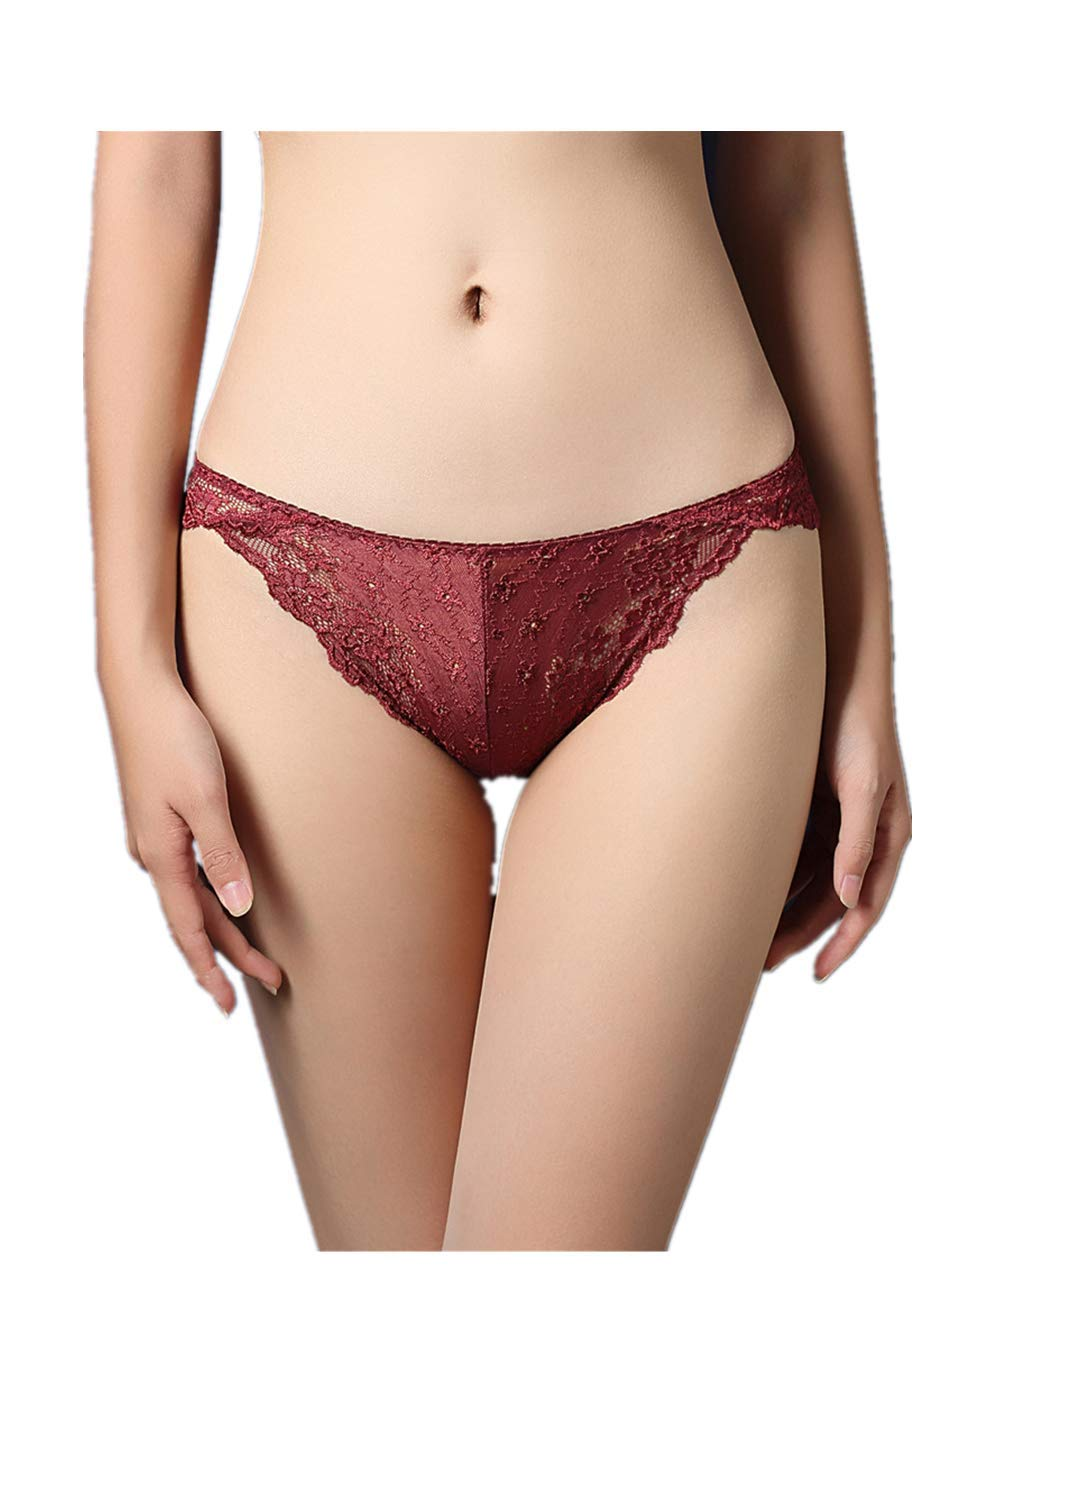 2019 New Womens Ladies Sexy Lingerie Thongs G-String Shorts Briefs Lace Solid Low-Waist Hip Hollowed Perspective Panties (Wine)